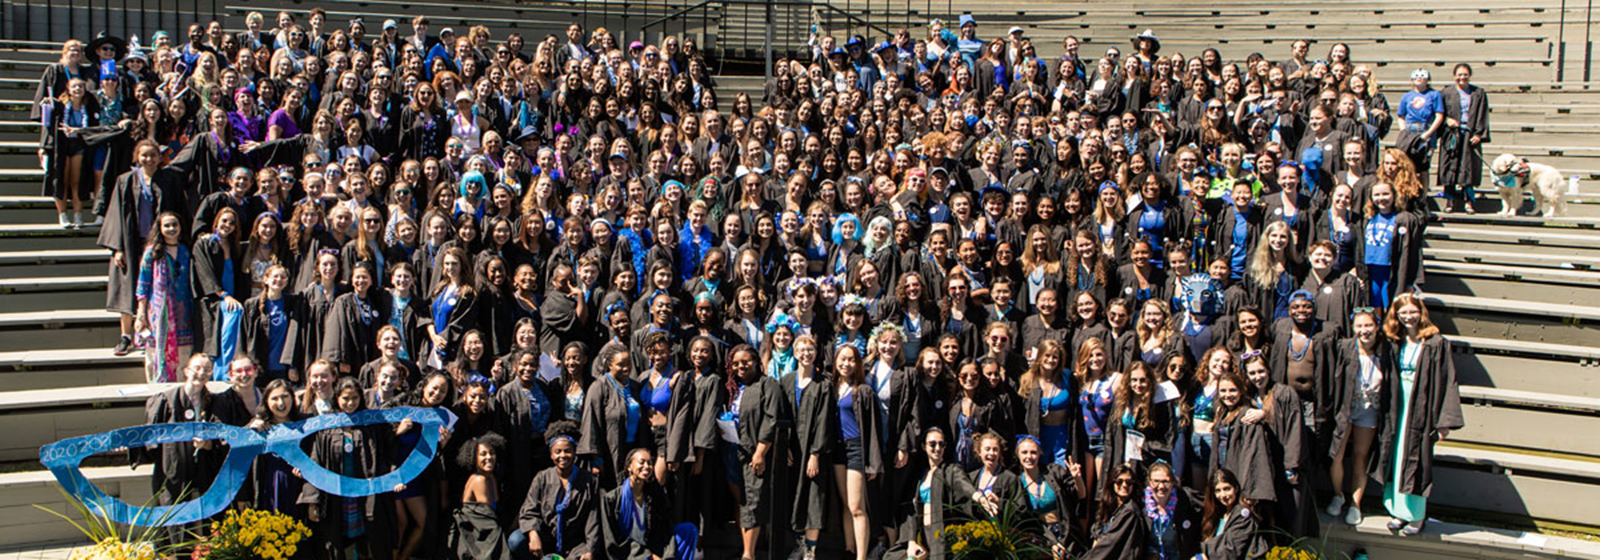 The class of 2020 in the ampitheater following Convocation in September, 2019